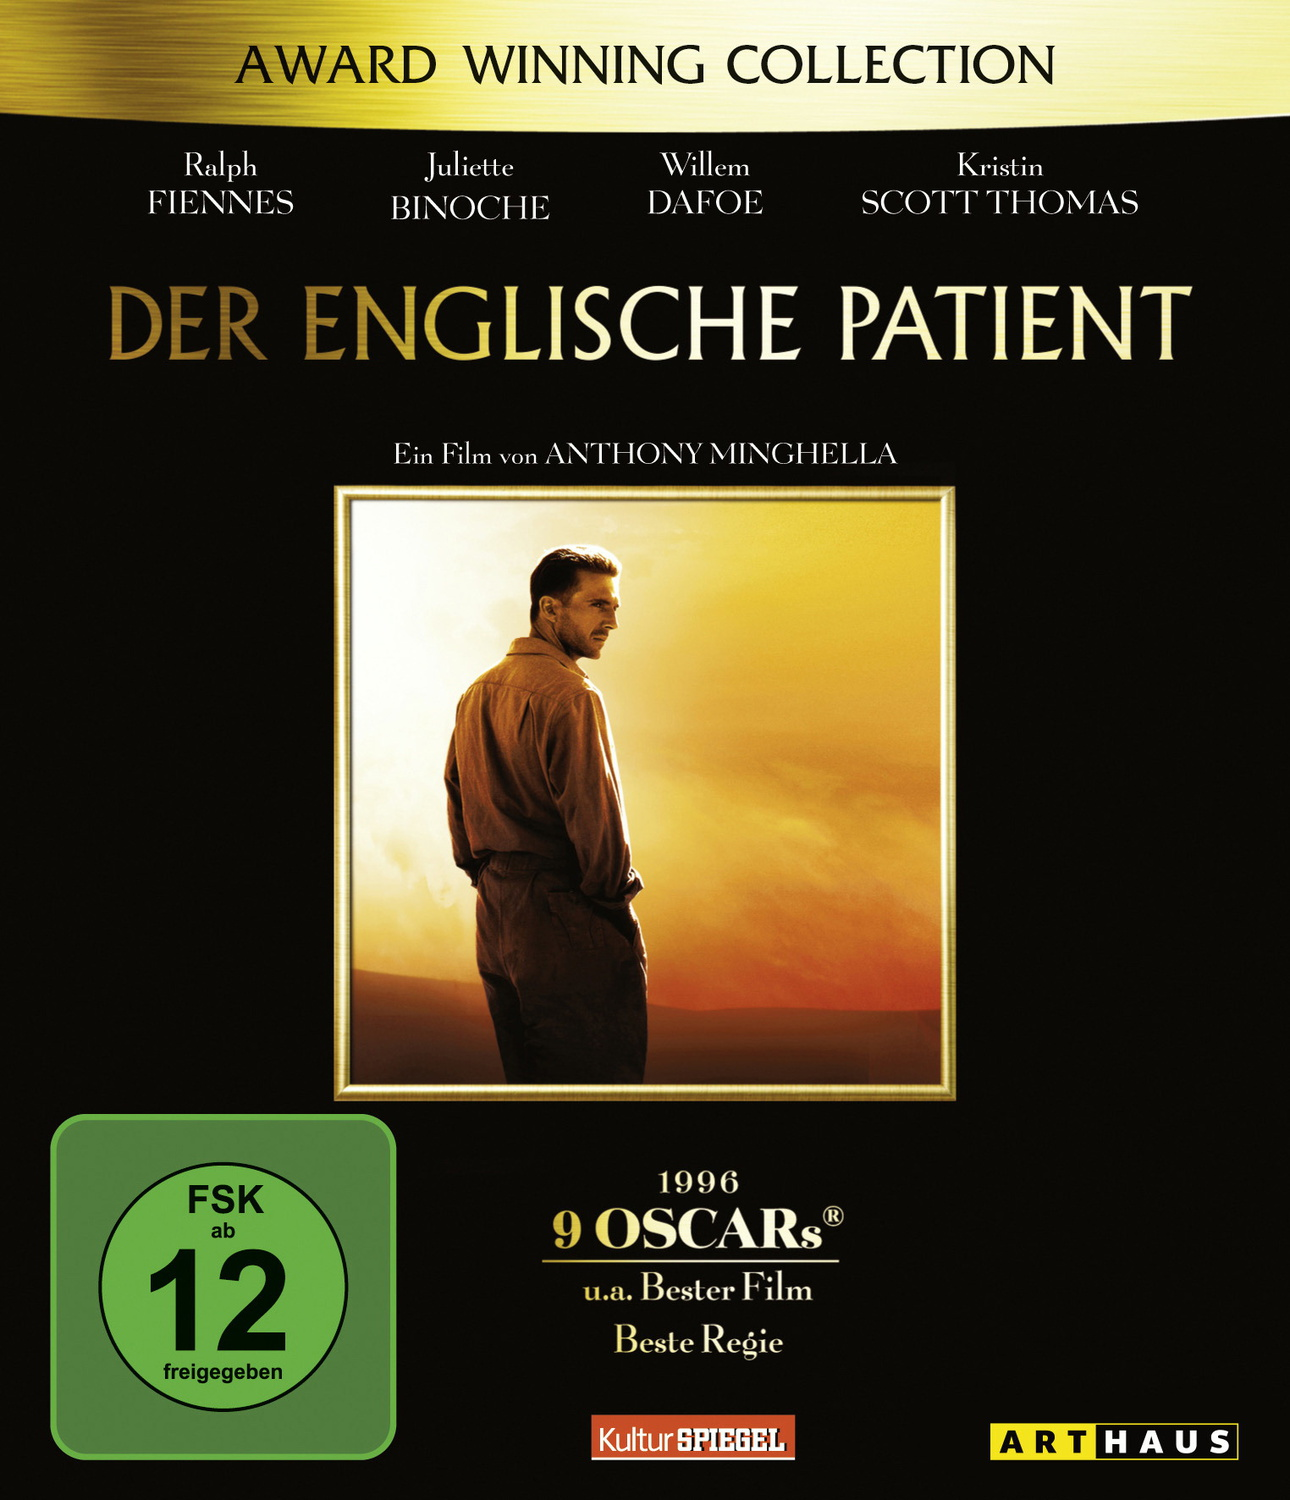 Der englische Patient [Award Winning Collection]